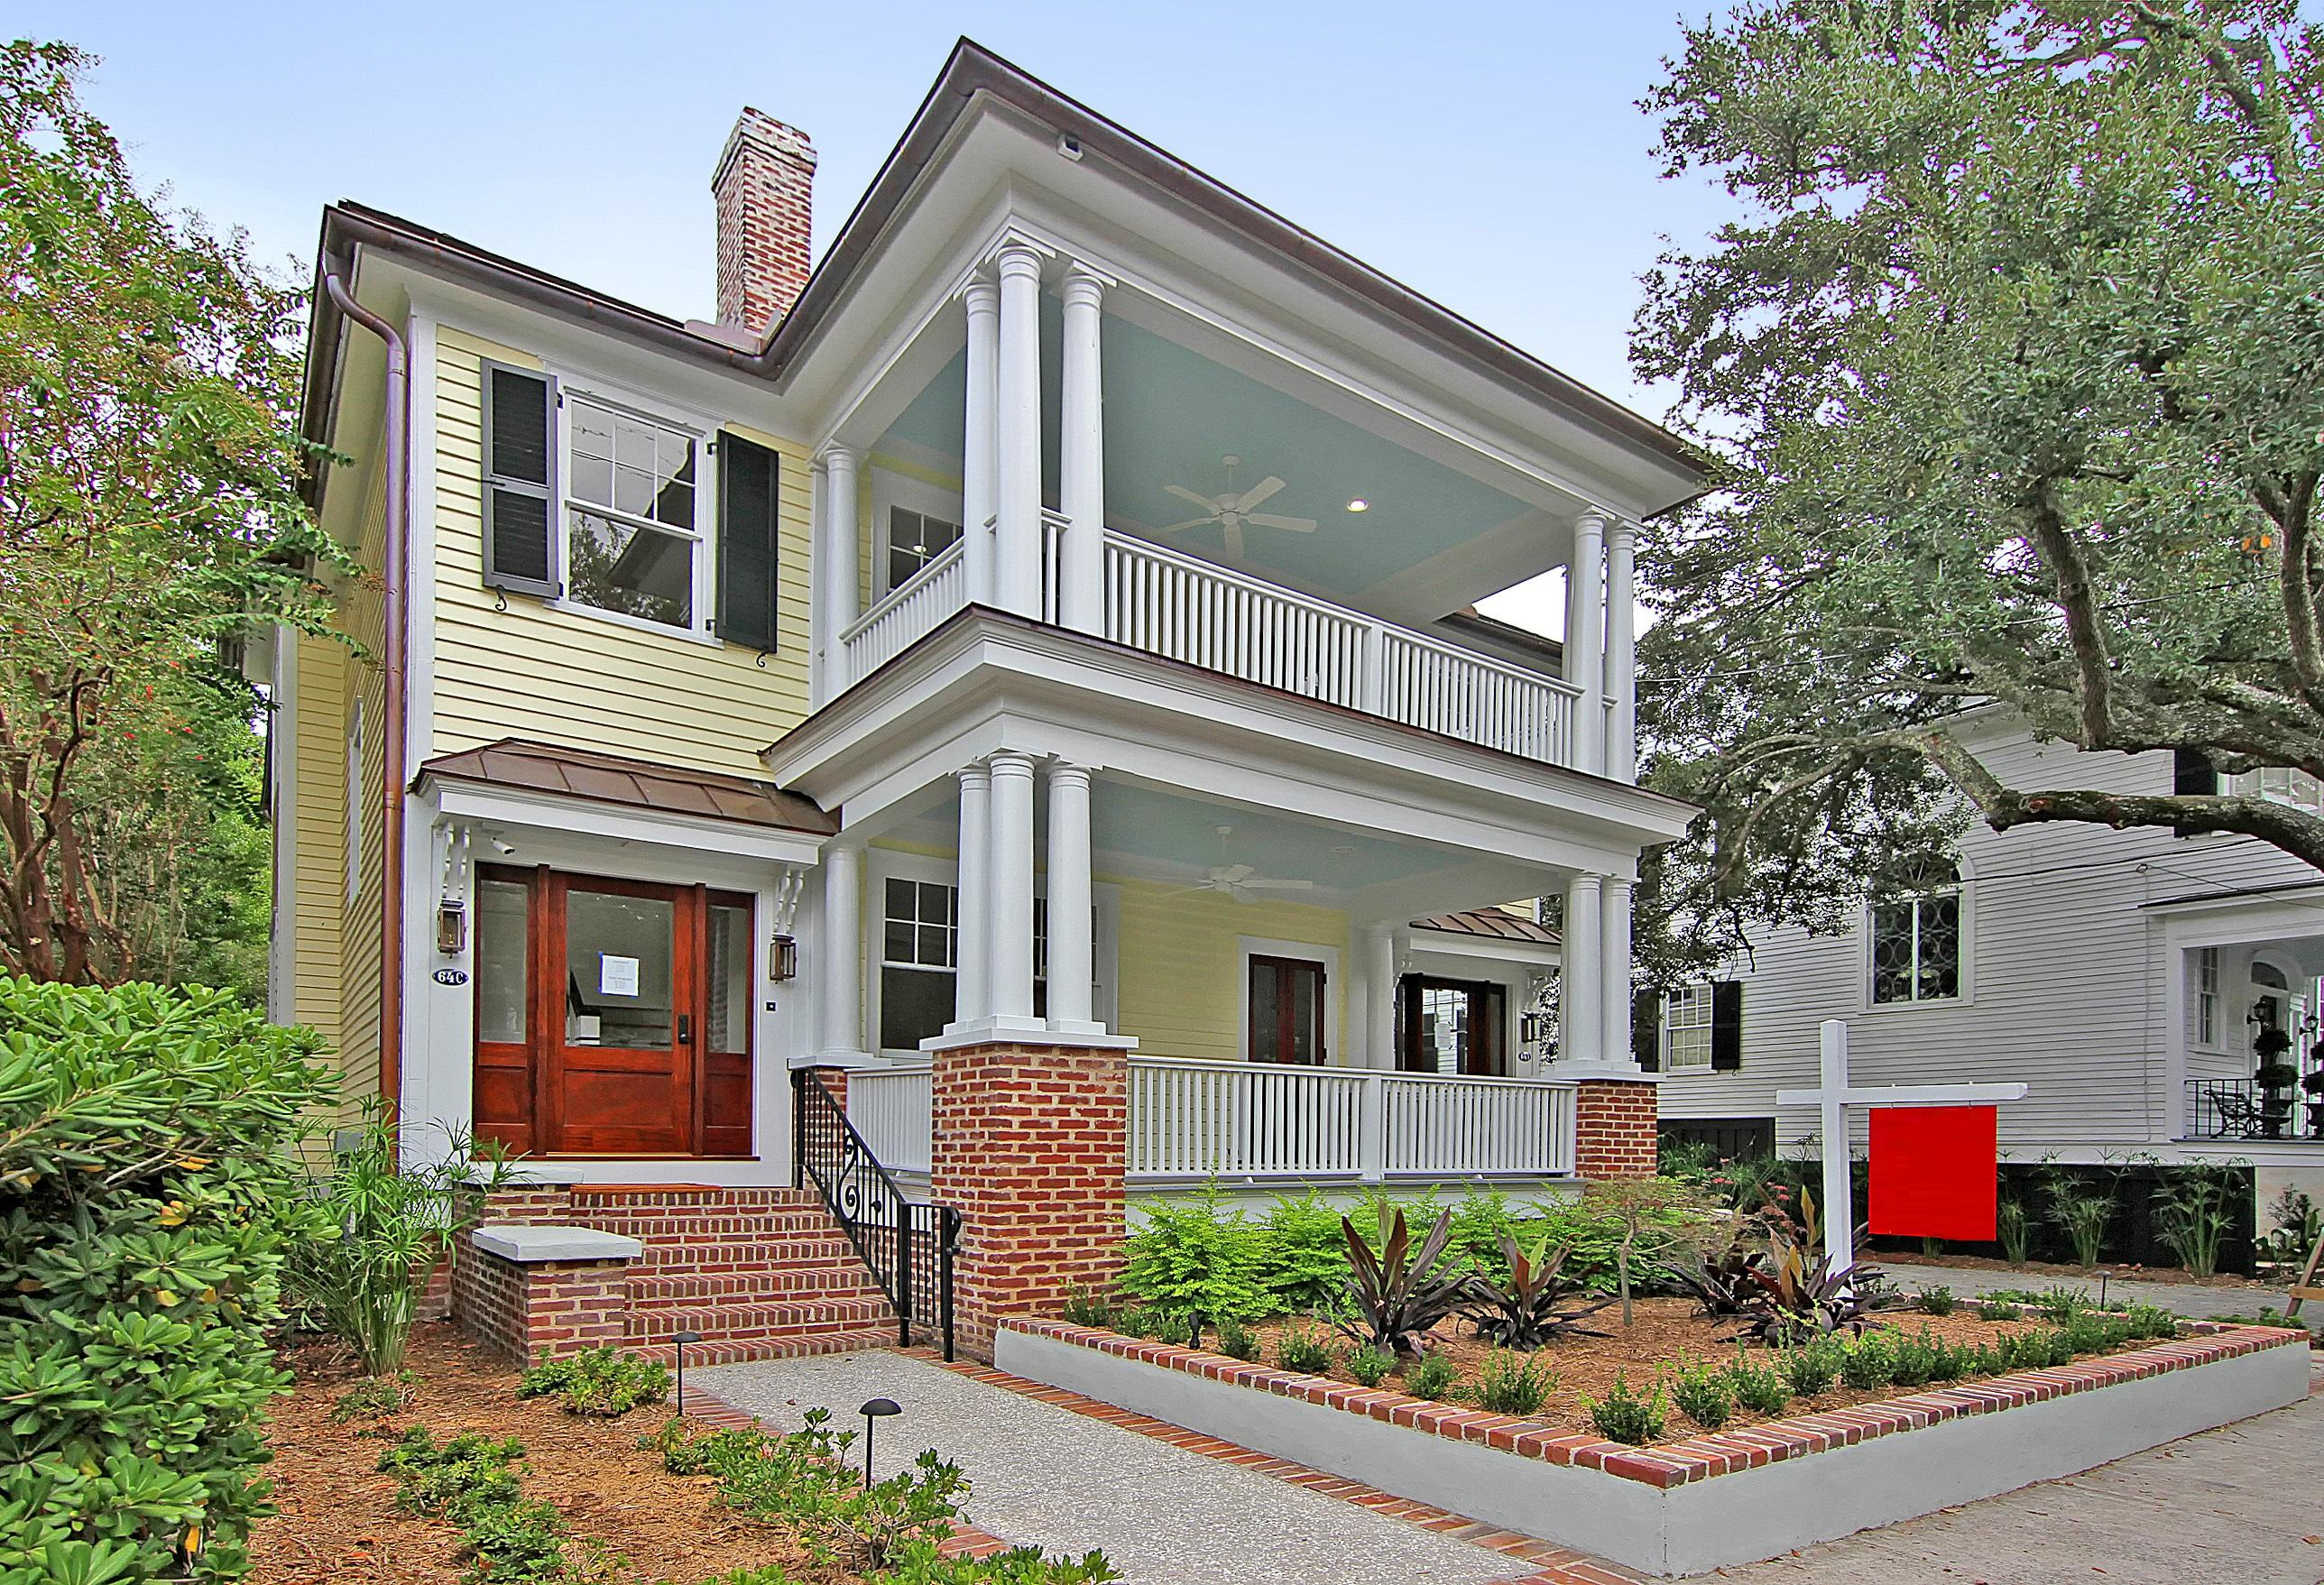 Home for sale 64 Lenwood Boulevard, South Of Broad, Downtown Charleston, SC